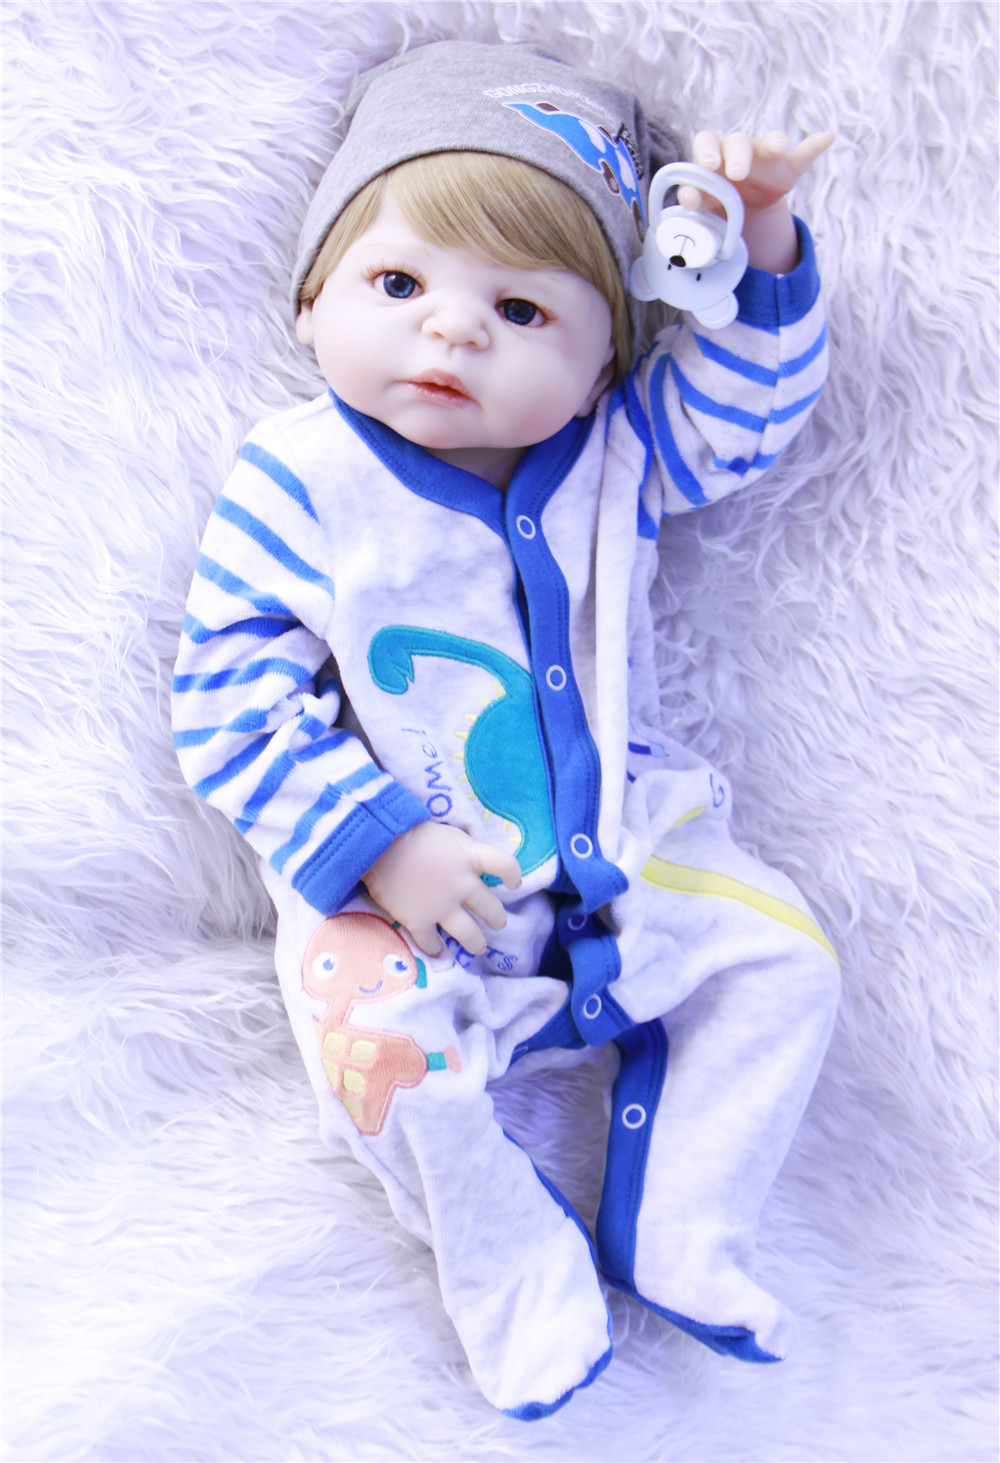 Full silicone reborn baby boy girl dolls 22NPK brand bebes reborn soft touch real true looking blond hair bonecas rebornFull silicone reborn baby boy girl dolls 22NPK brand bebes reborn soft touch real true looking blond hair bonecas reborn